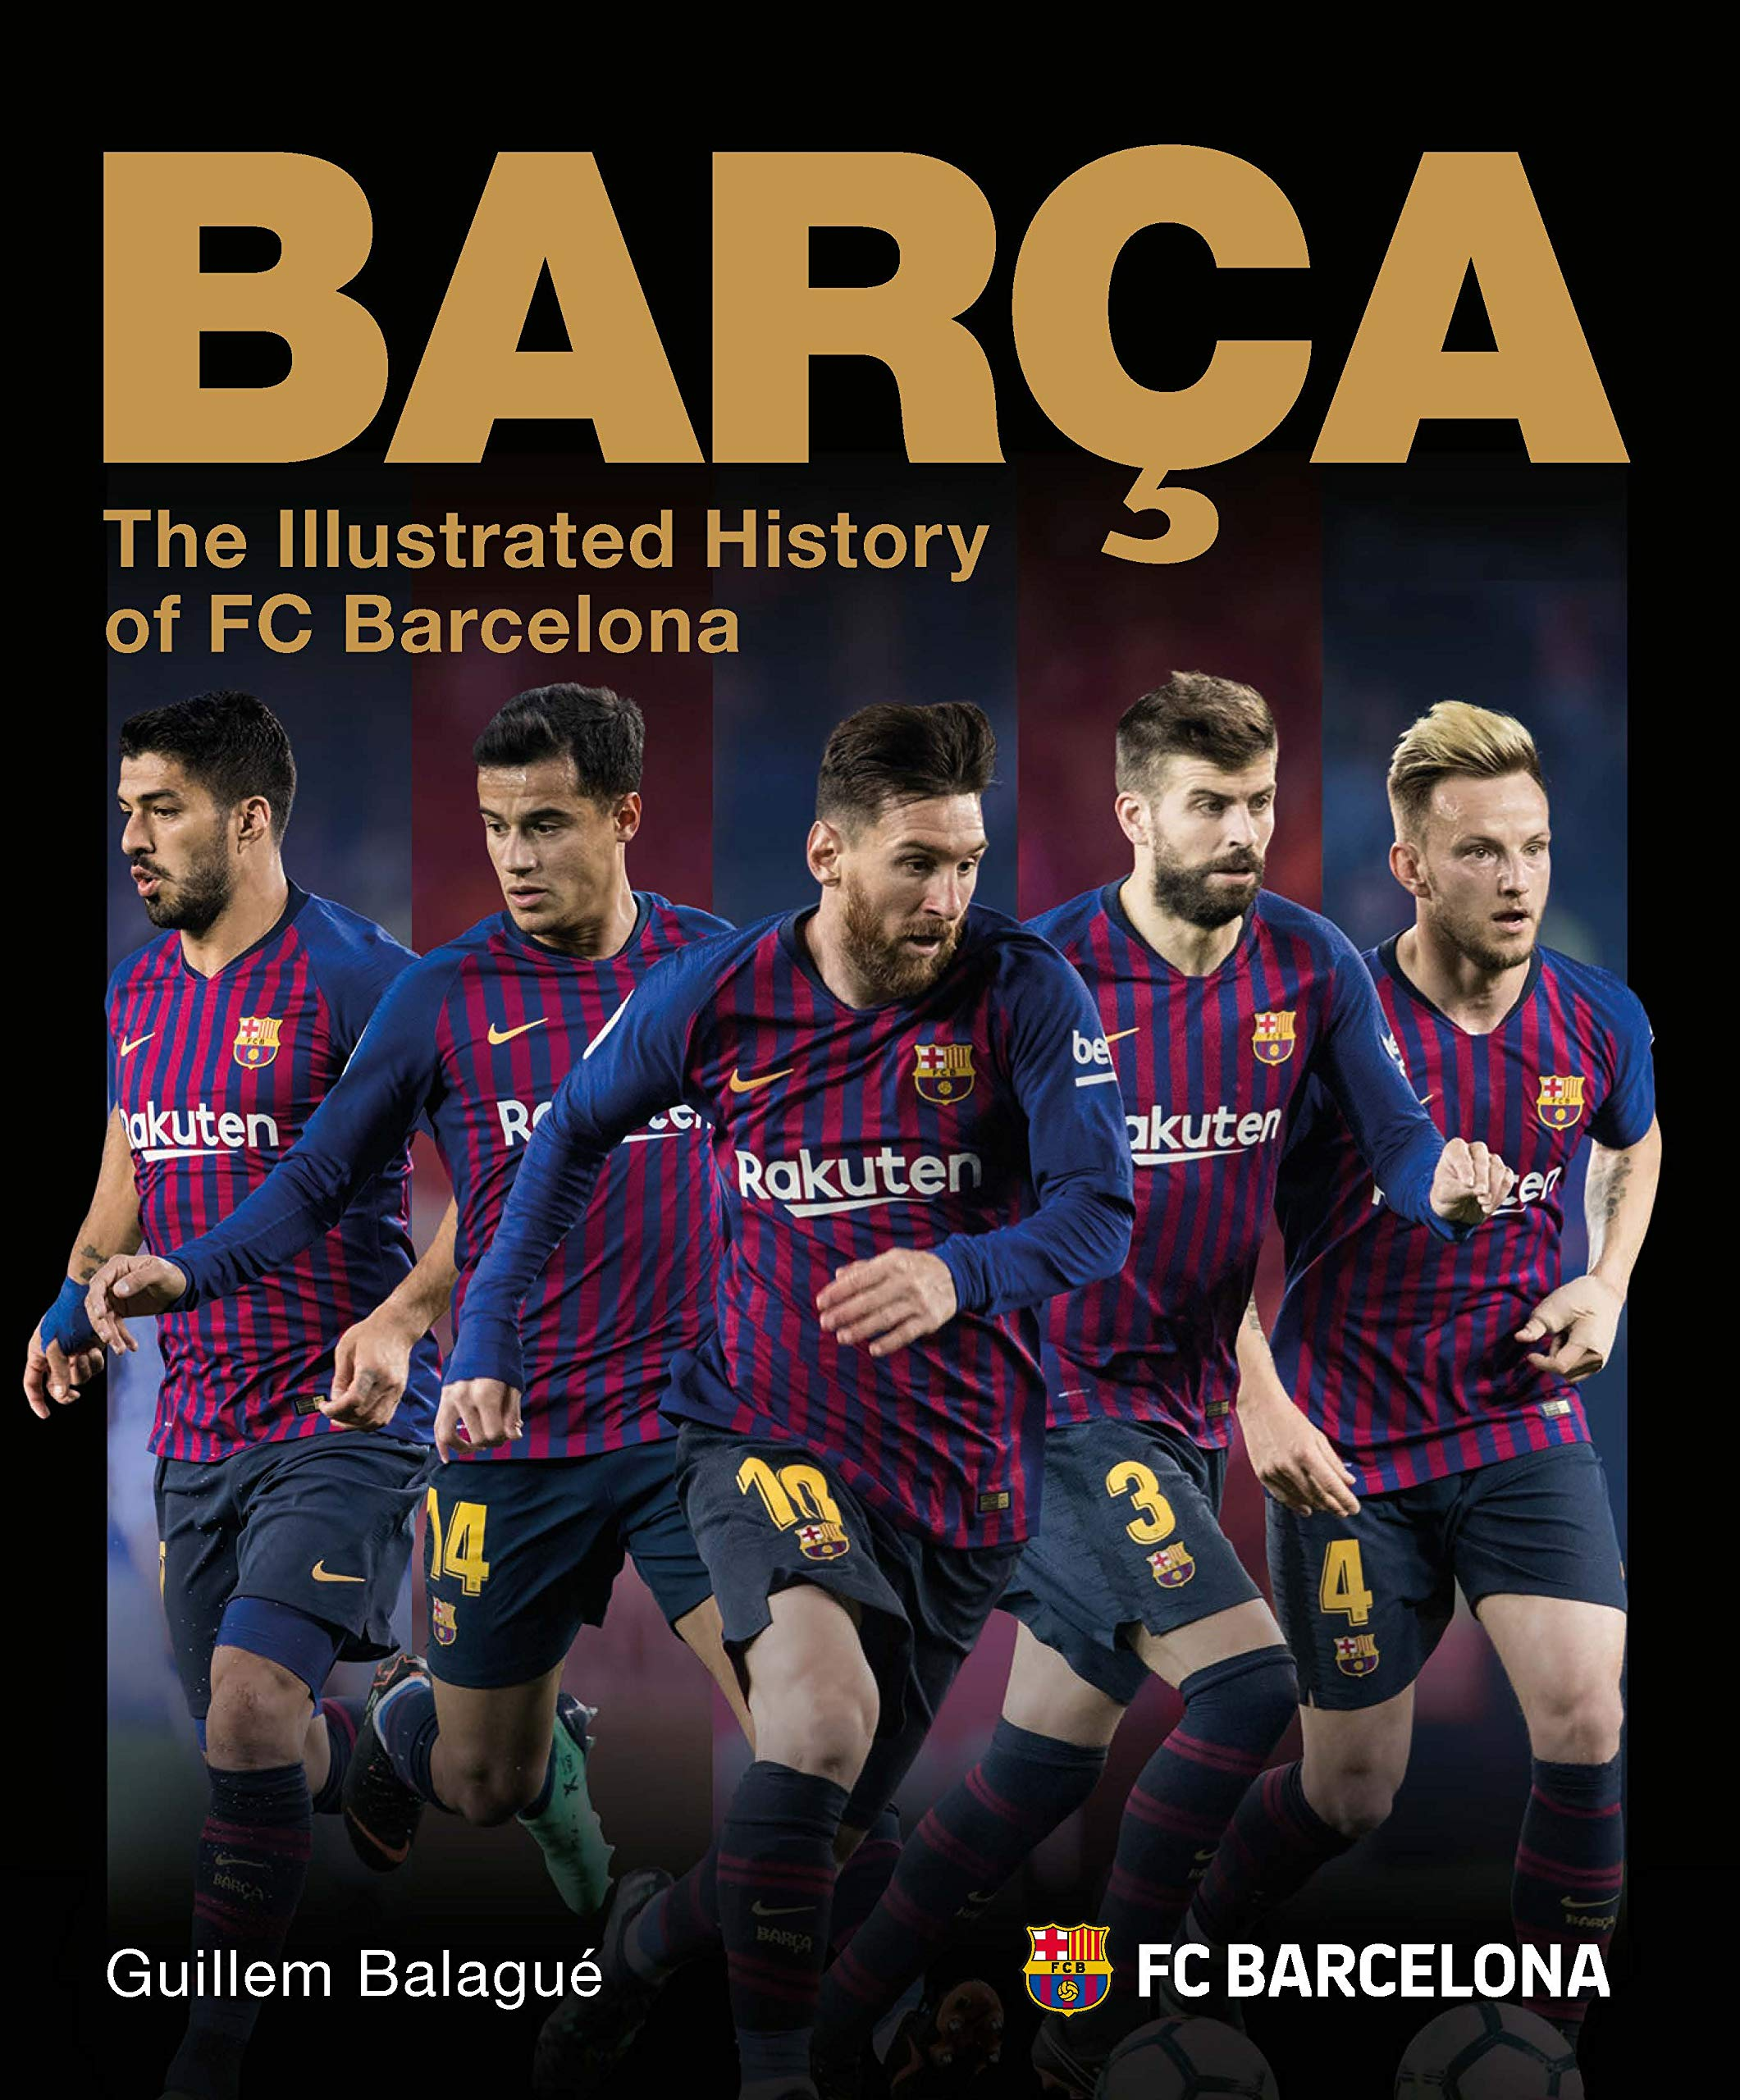 Barca: The Illustrated History of FC Barcelona by Carlton Books